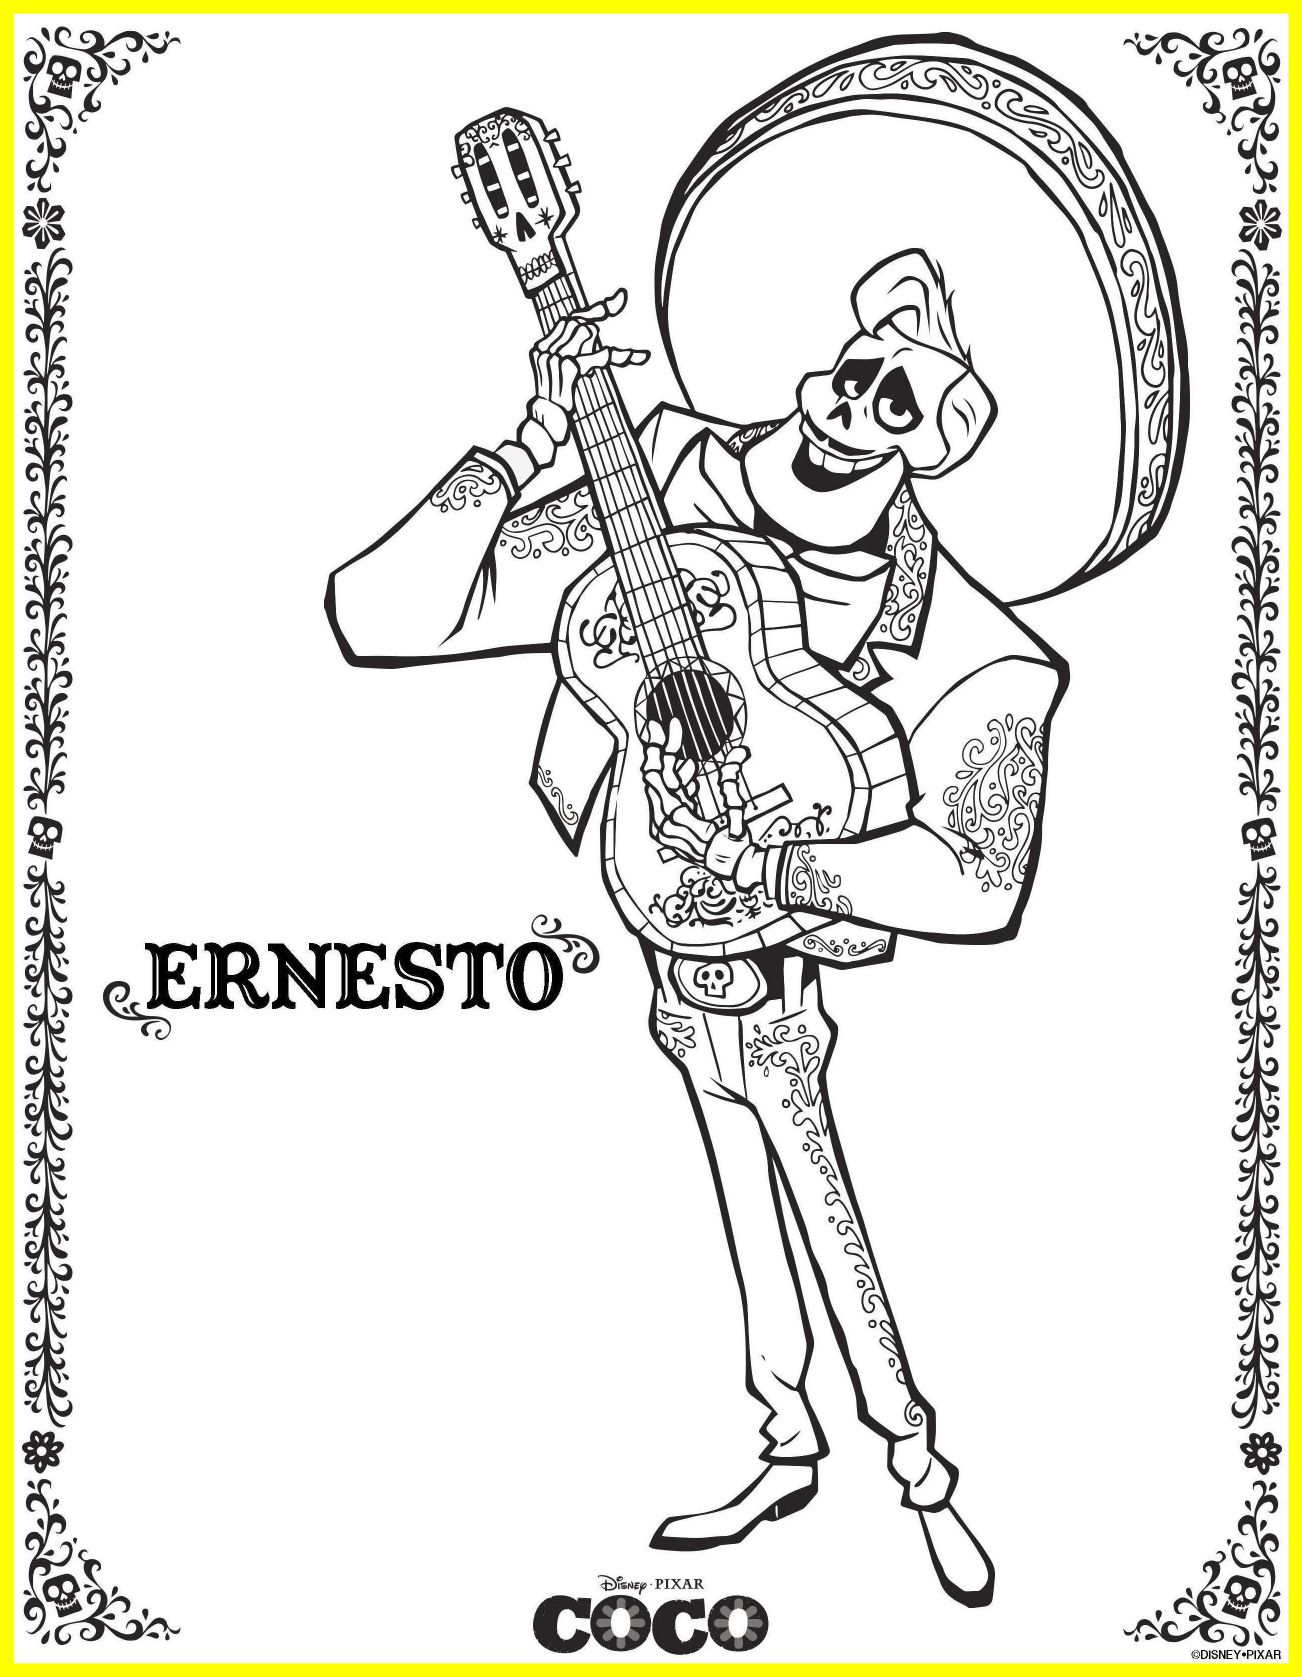 1302x1677 Best Coloring Page Pixar Inside Out Disney Up Pict For Popular